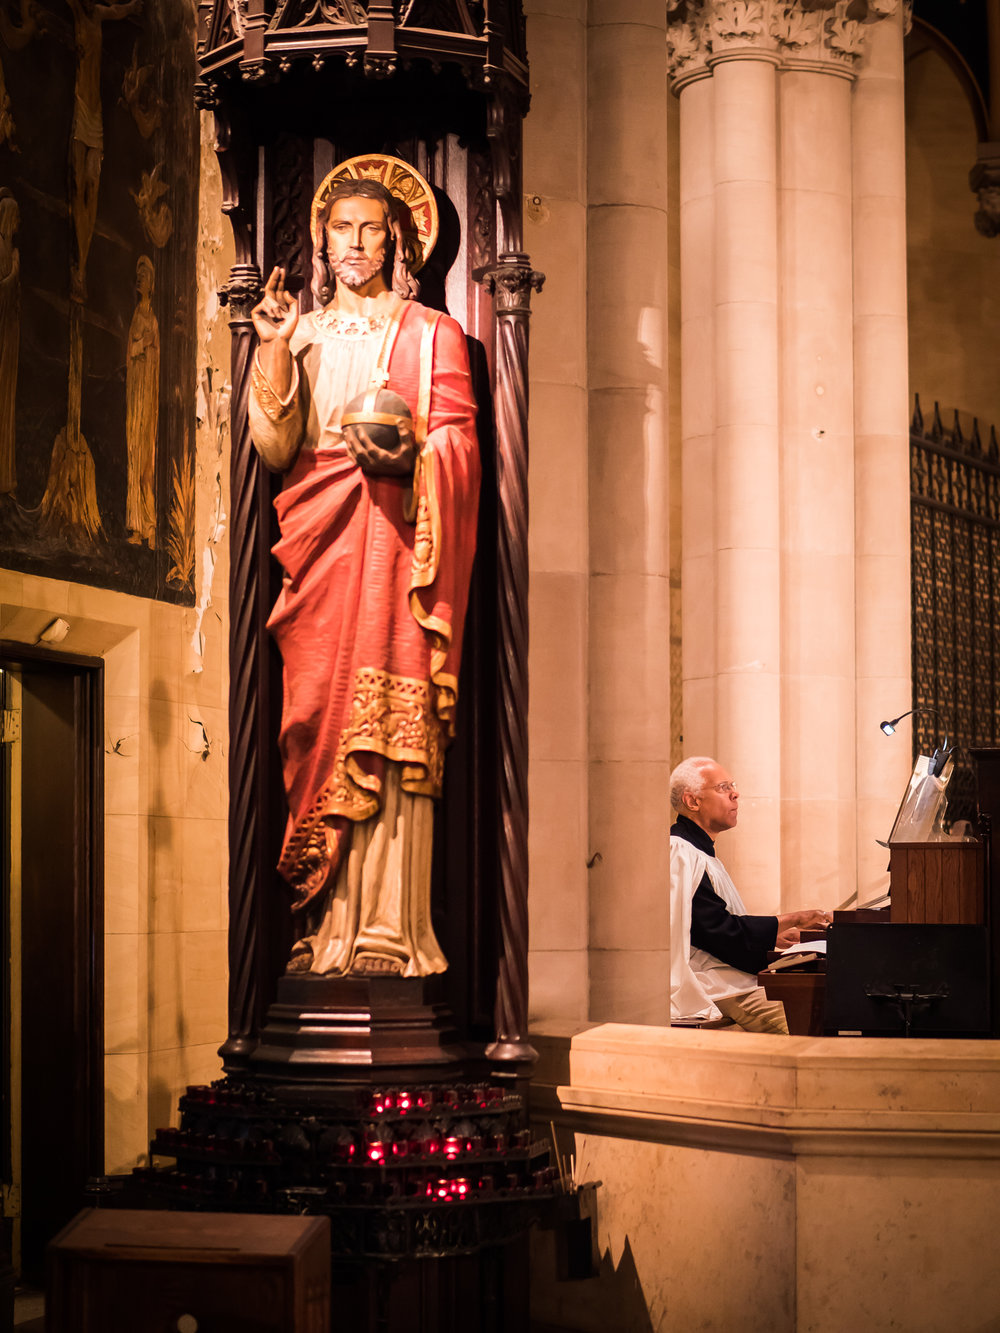 During the summer months, Dr. David Hurd plays the prelude before the Solemn Mass at the chancel console.   Foreground: The Shrine of Christ the King    by Johannes Kirchmayer (1860-1930)   Photo by Ricardo Gomez